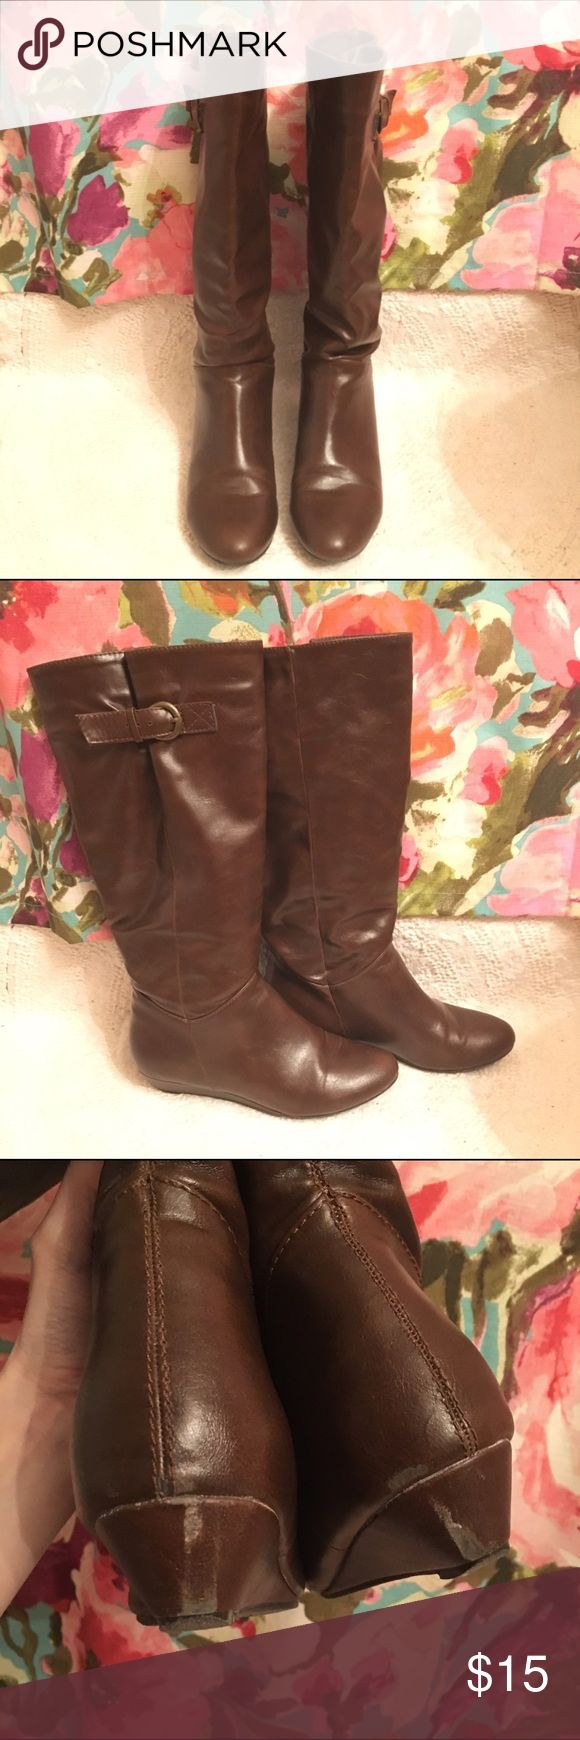 Brown Wedge Heel Boot Brown wedge heel boots. Buckle for adjust for wider calves. Small scuff on backs of heels as shown in pictures, not noticeable while wearing since they are underneath. Comfortable wearing all day. Similar to Steve Madden Intyce boots. American Eagle Outfitters Shoes Heeled Boots